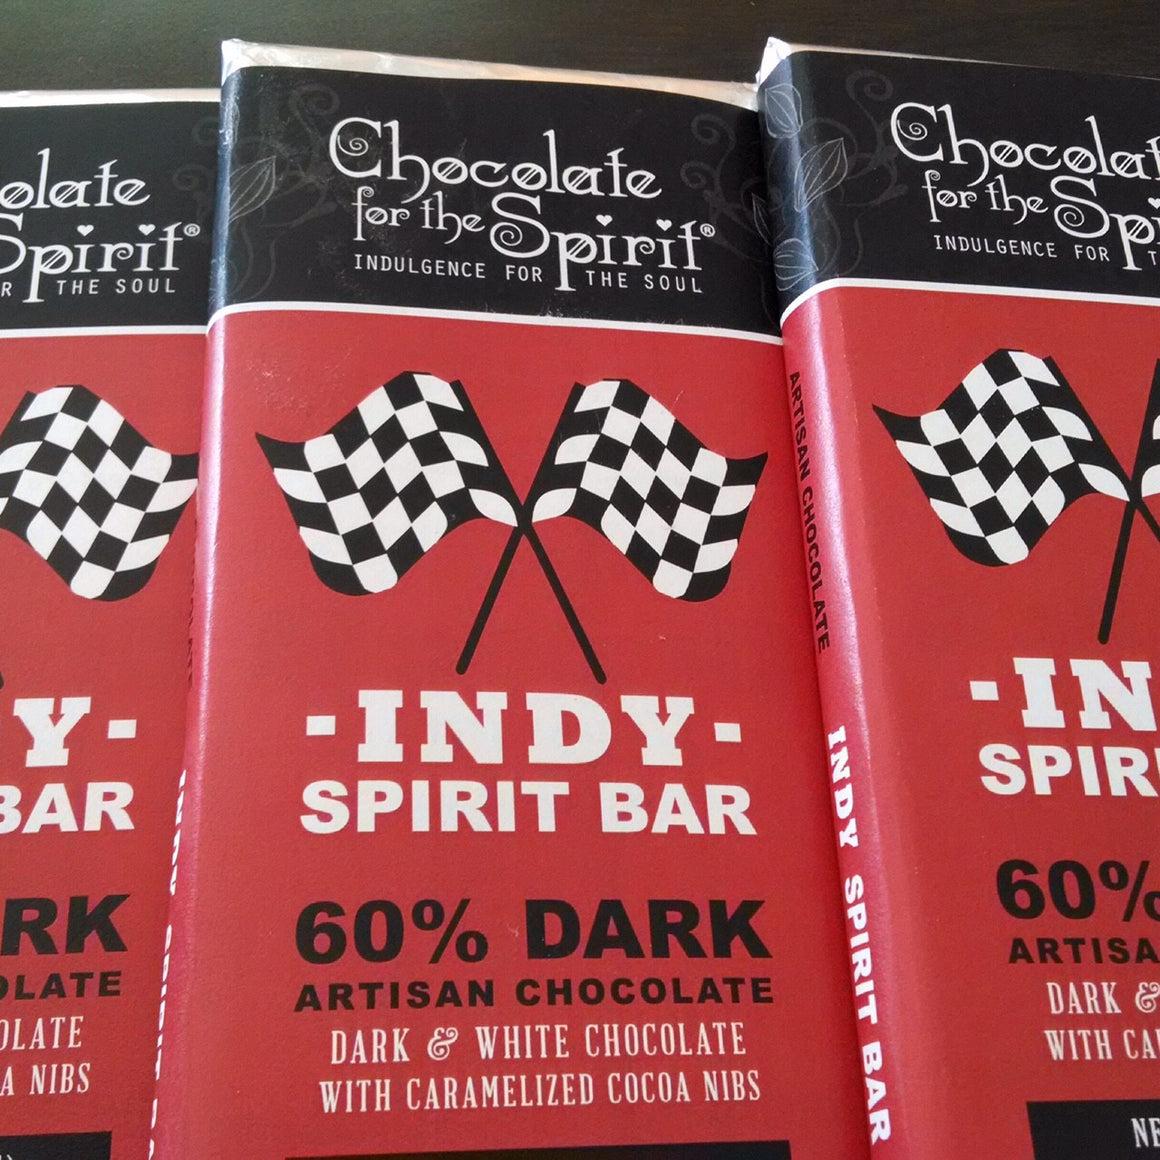 Indy Spirit Bar